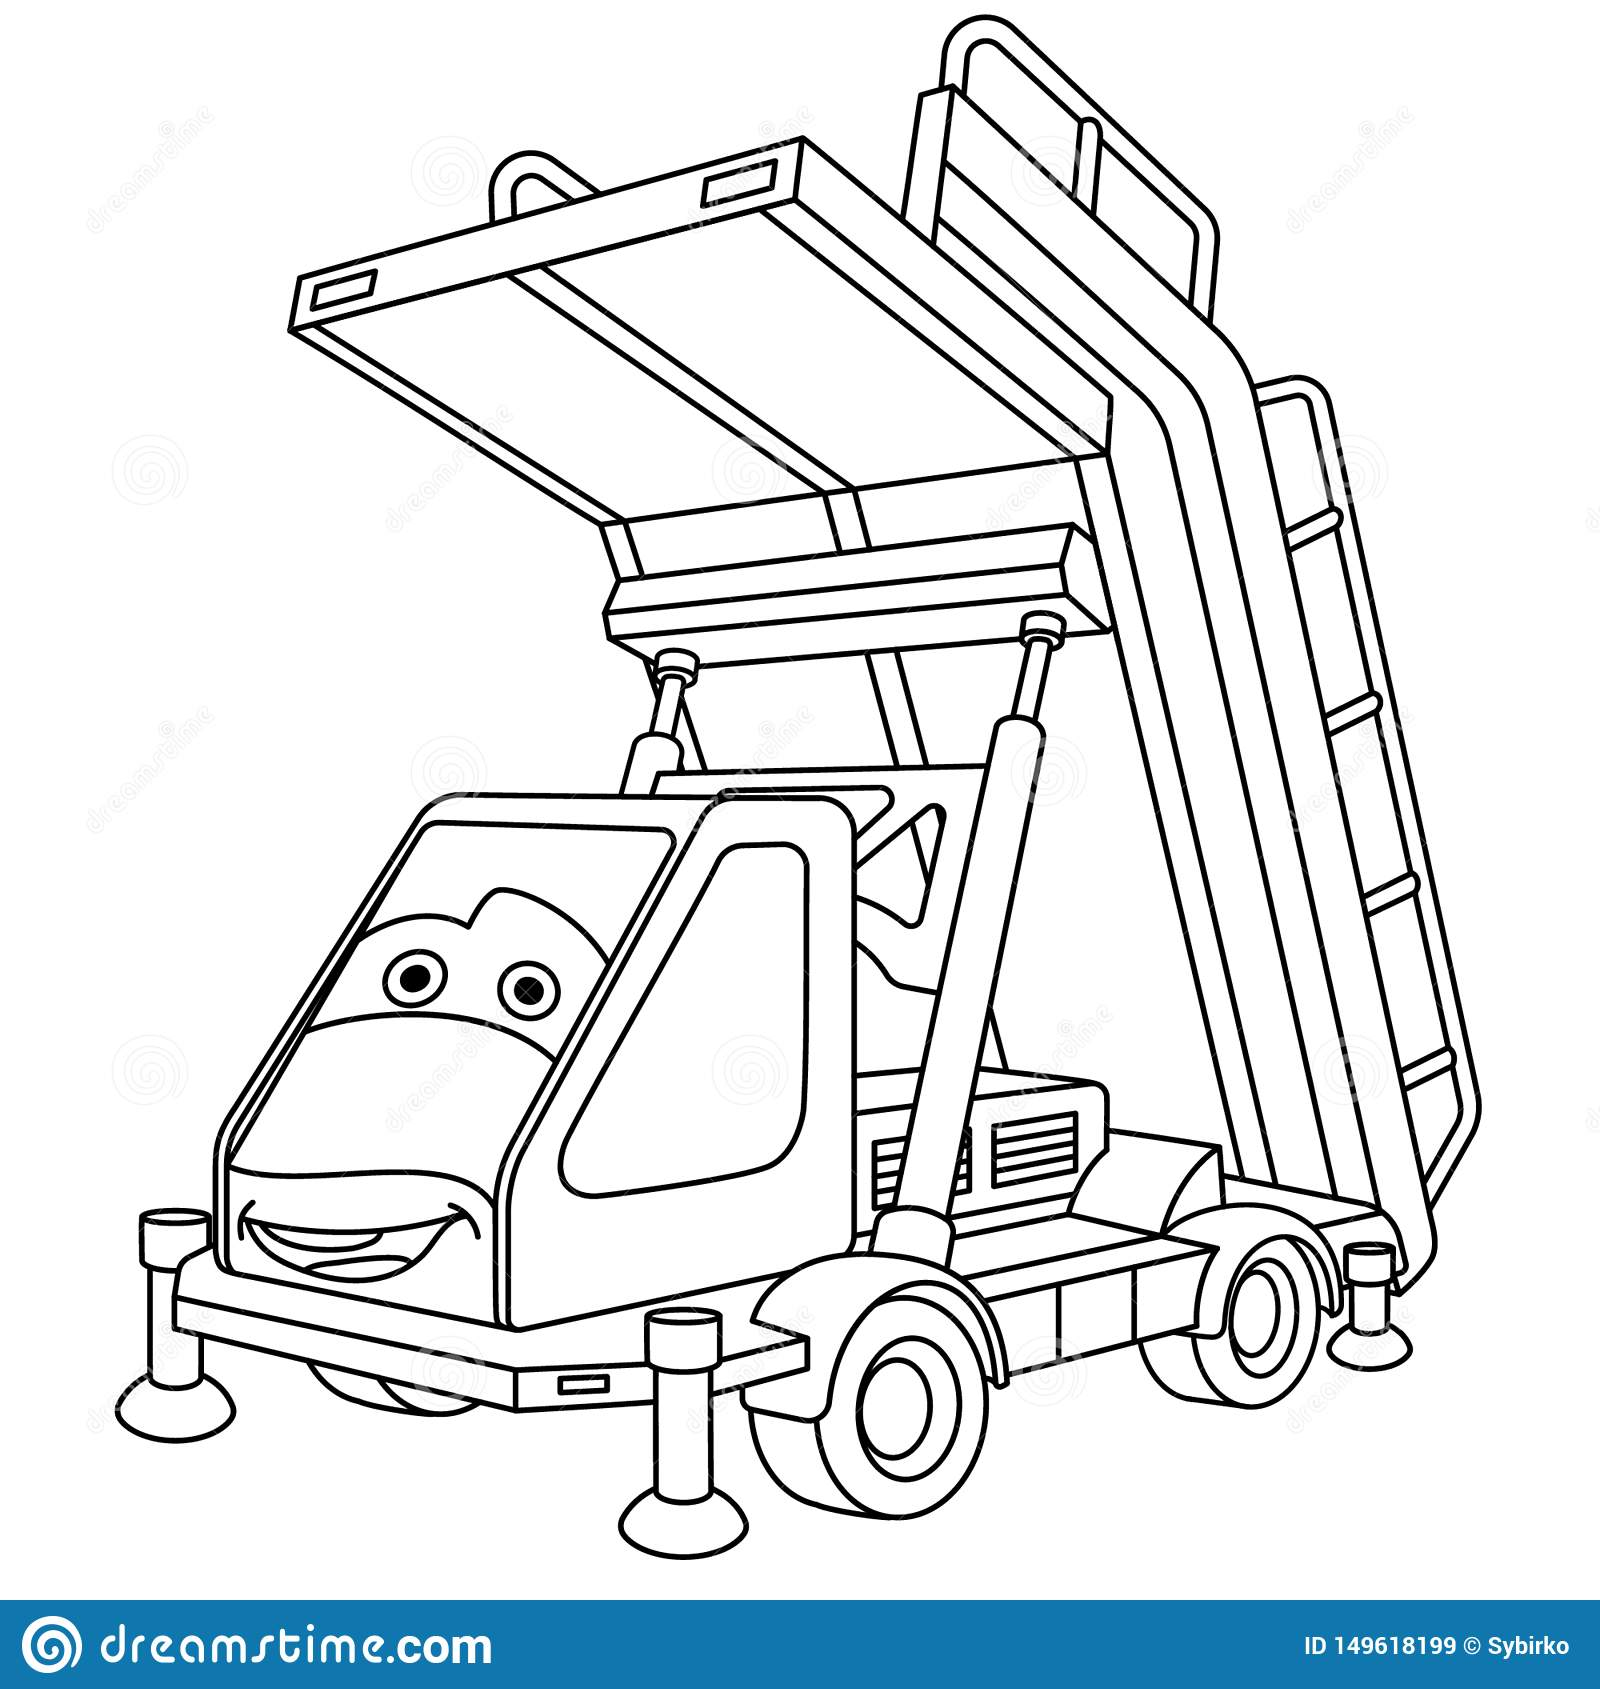 Coloring Page With Passengers Boarding Stairs Car Stock